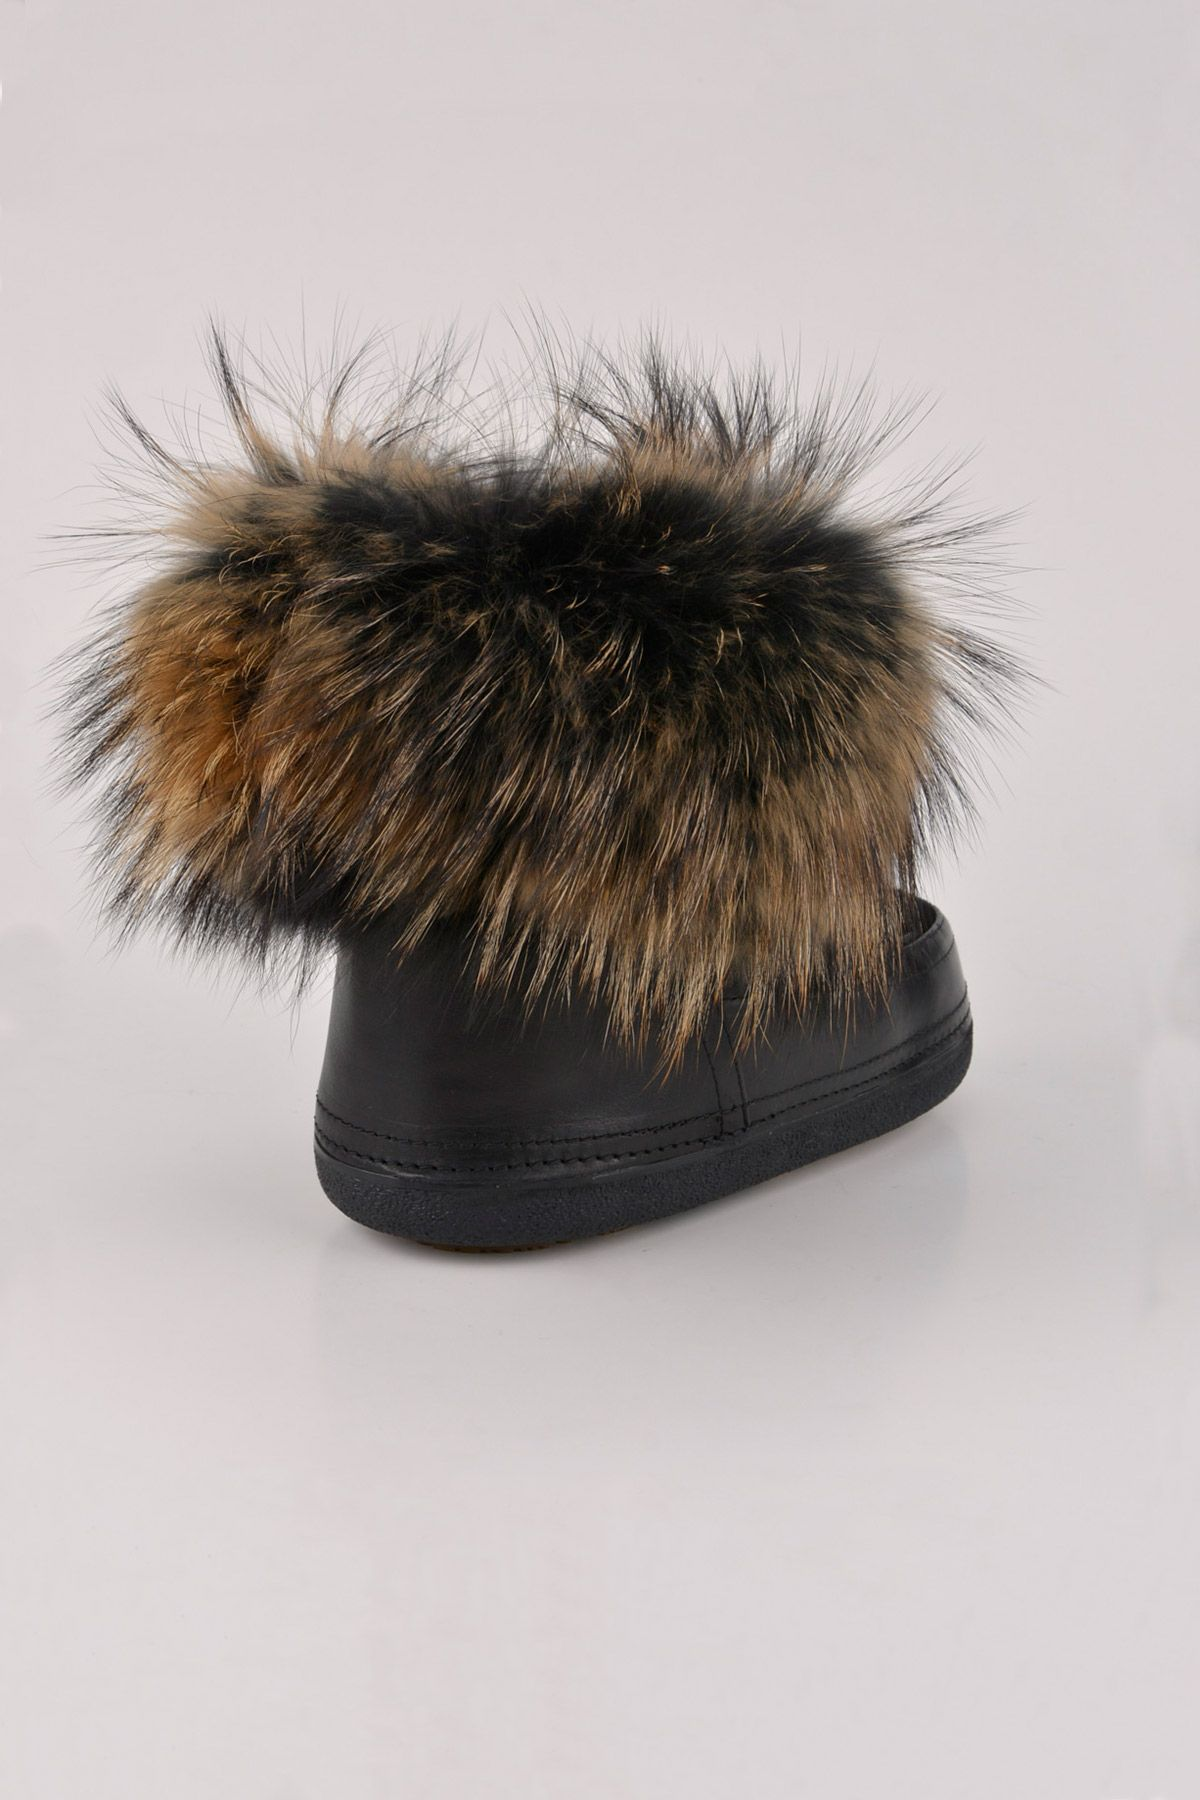 BYMN Flyffy Women Moonboots From Genuine Leather And Sheepskin Fur B351015 Black